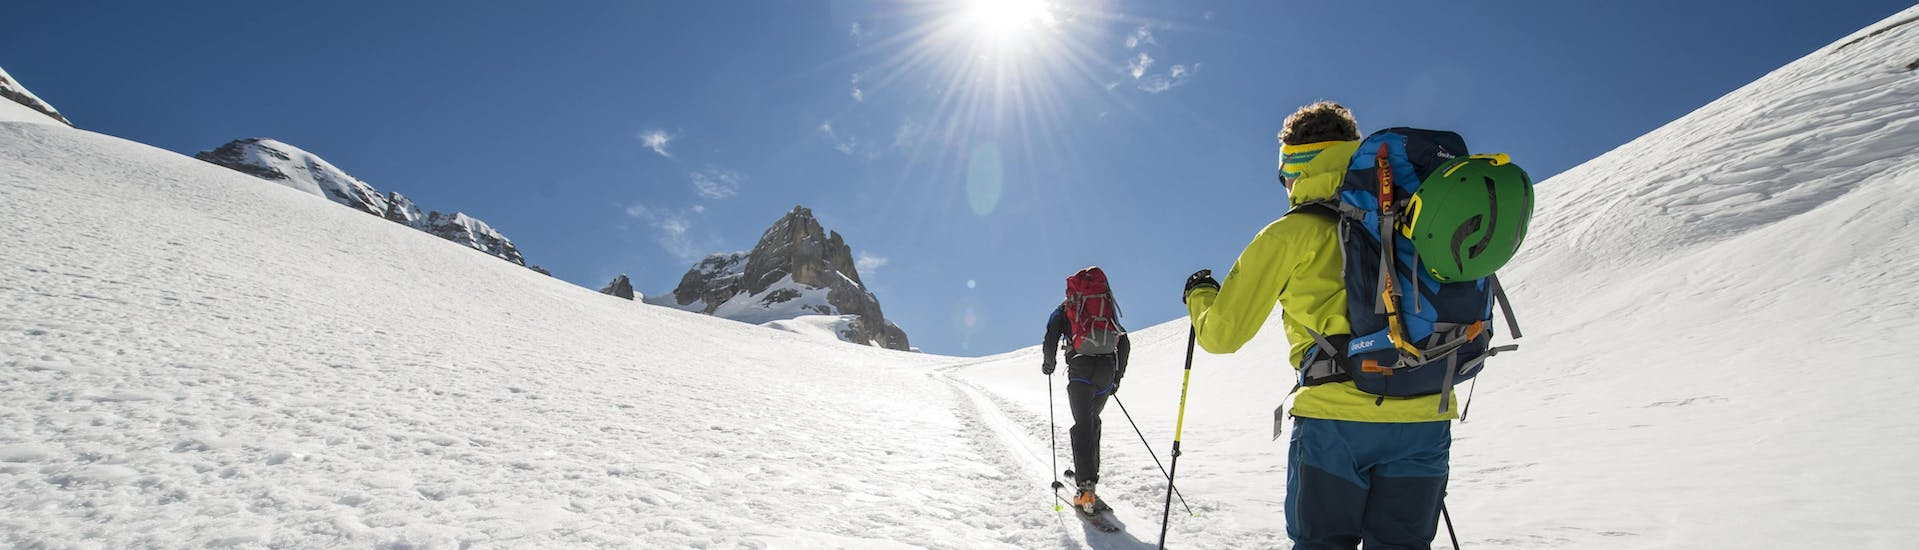 A ski touring guide is guiding another skier to the mountain summit while on a ski tour in the ski resort of Cota 2000.